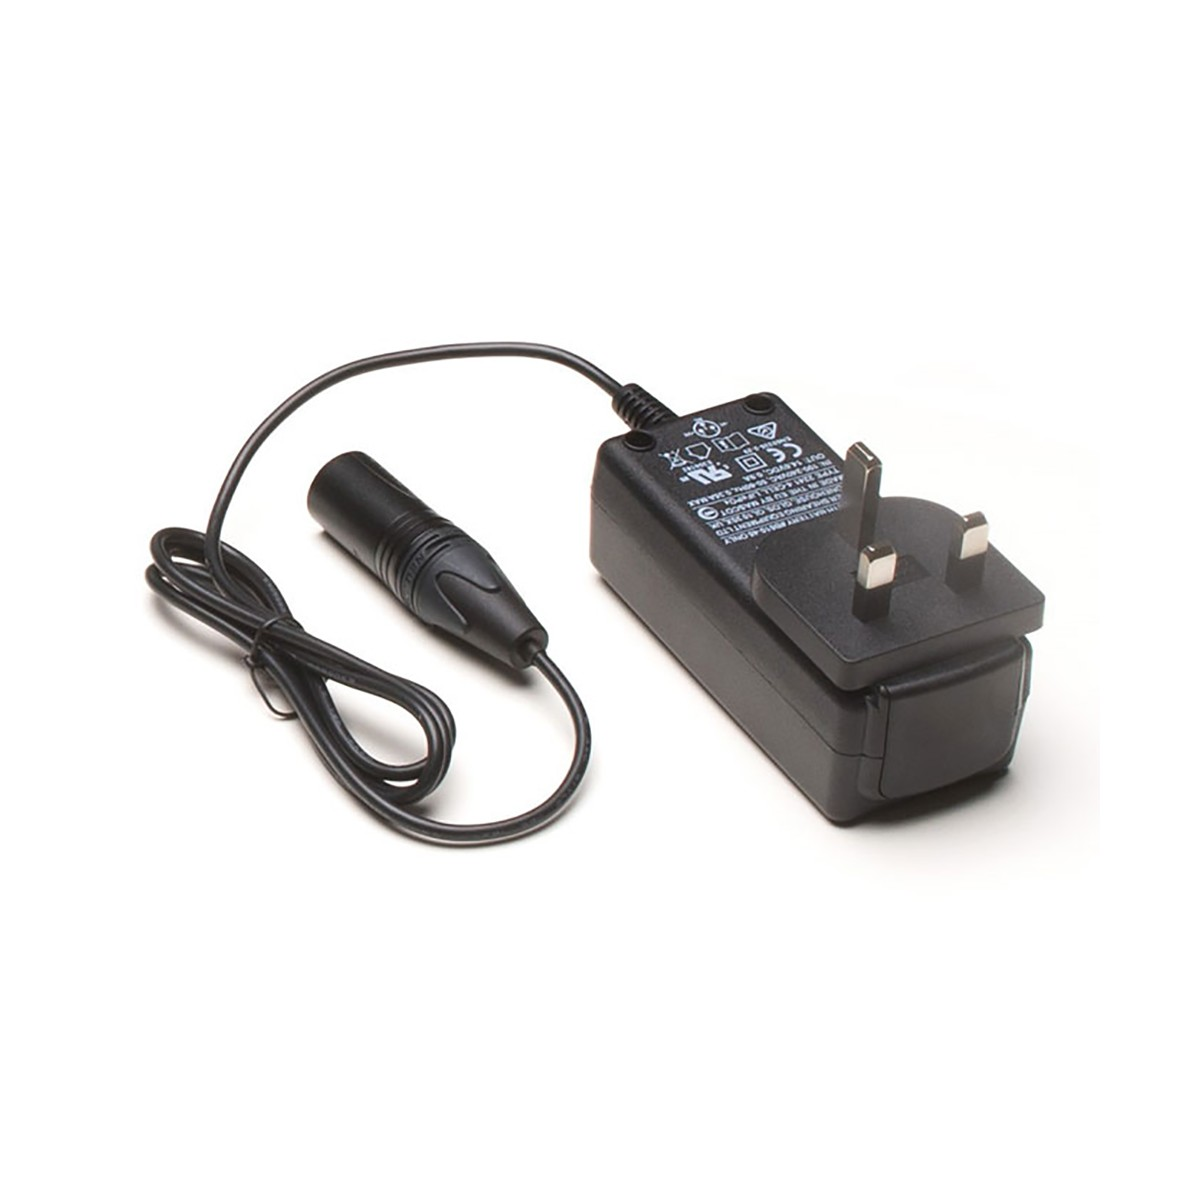 Lister Lithium Battery Charger